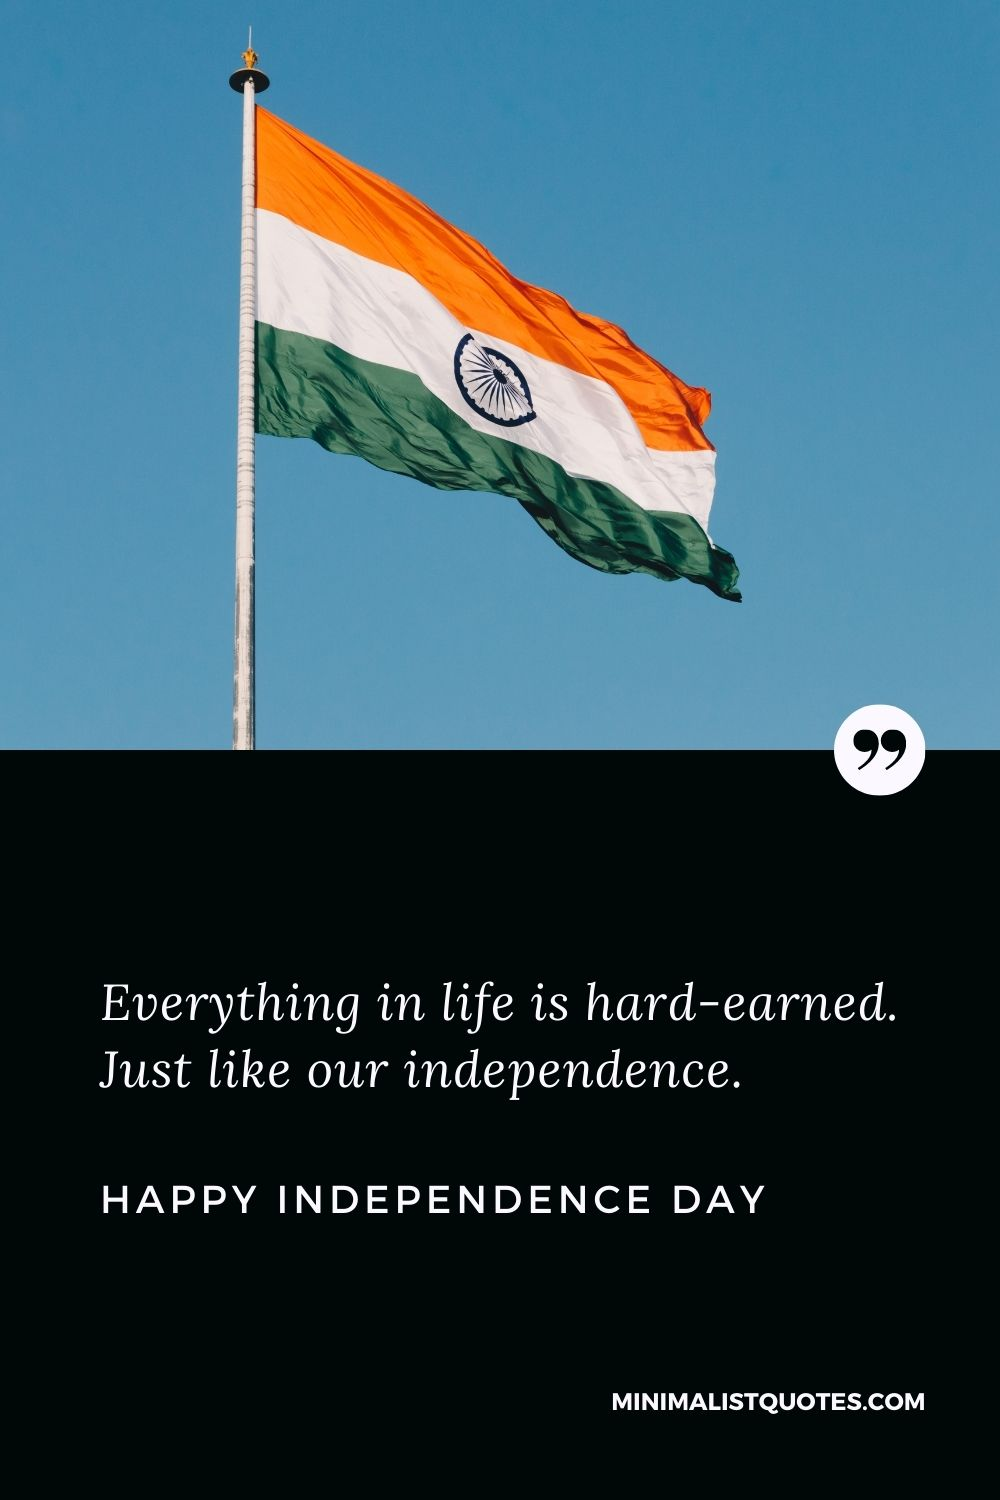 Independence Day Wish & Message With HD Image: Everything in life is hard-earned. Just like our independence. Happy Independence Day!